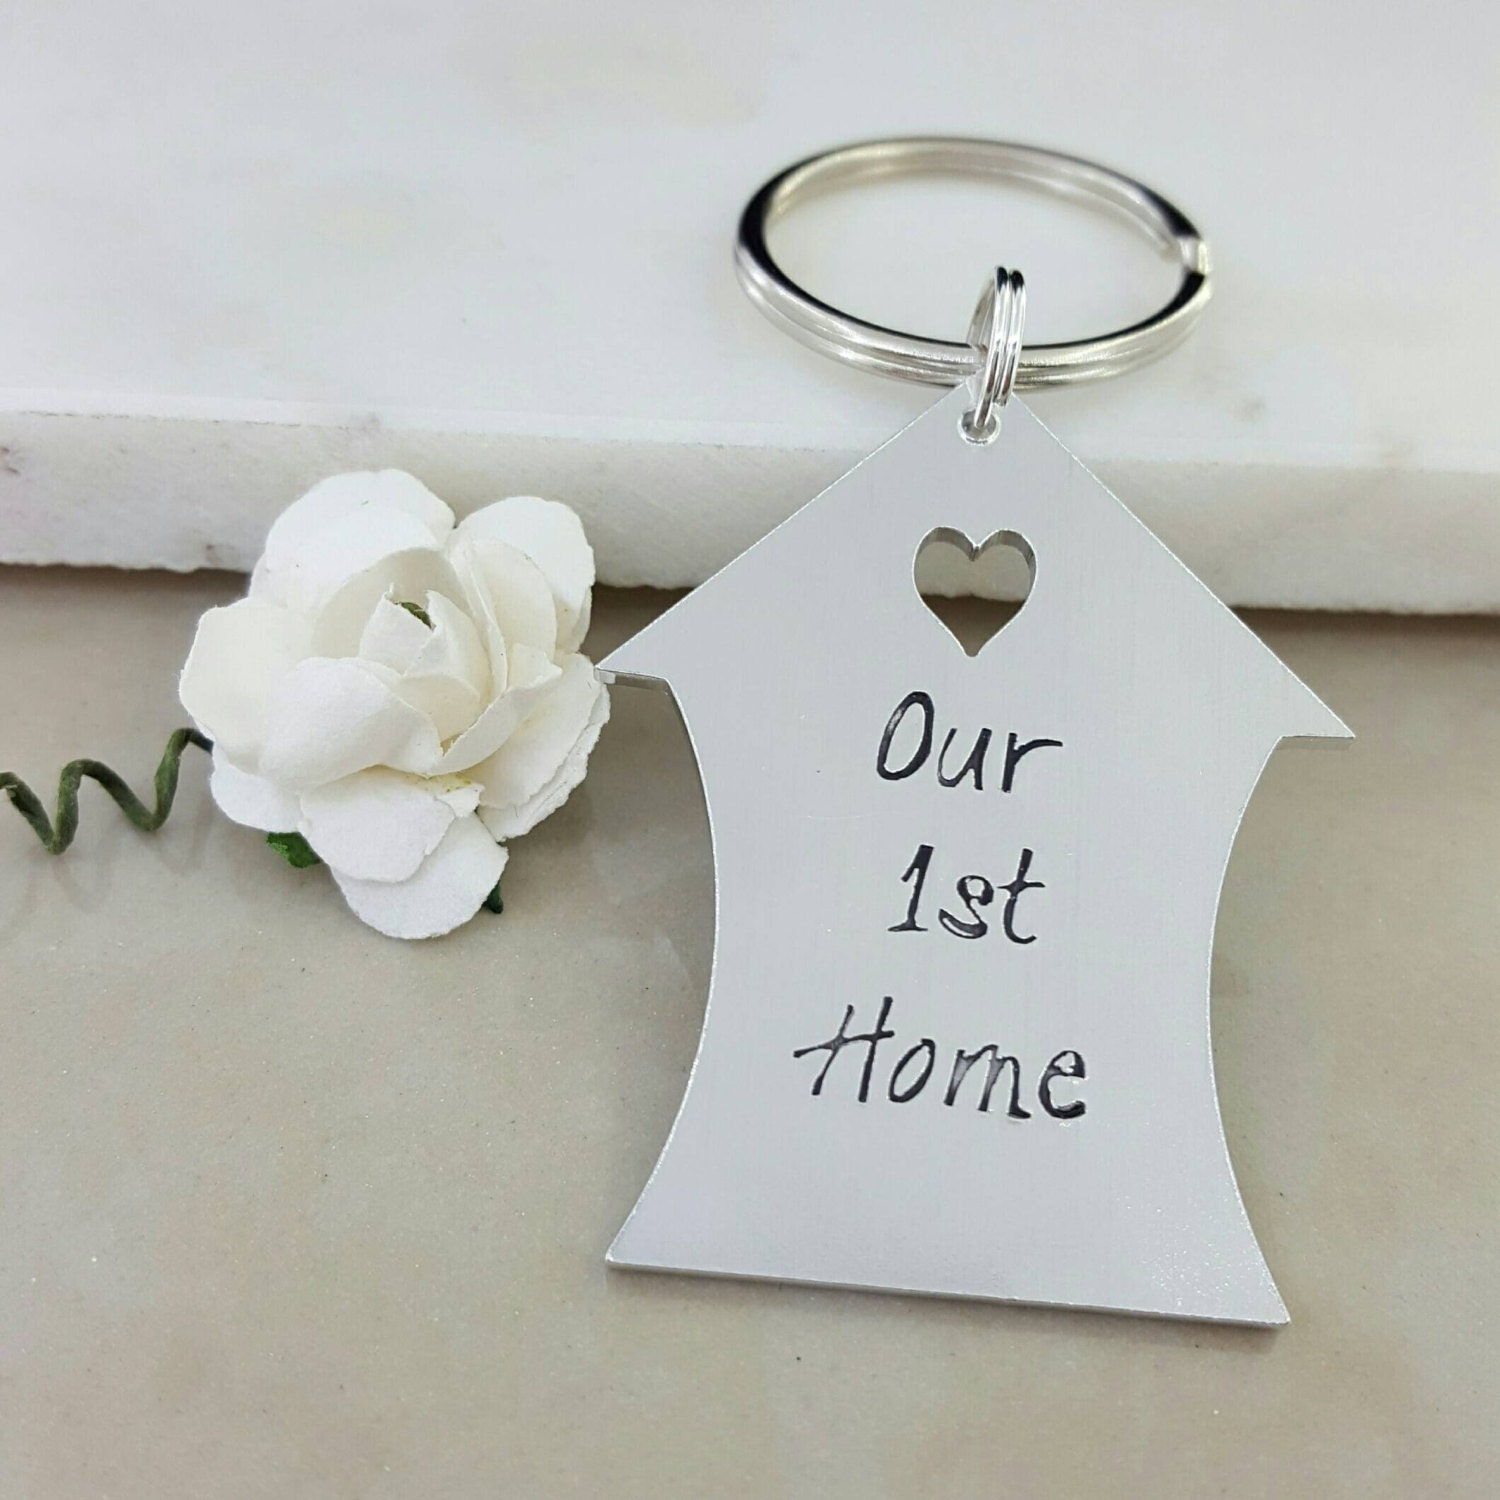 Our 1st Home Gift House Keys New Home Gift Housewarming